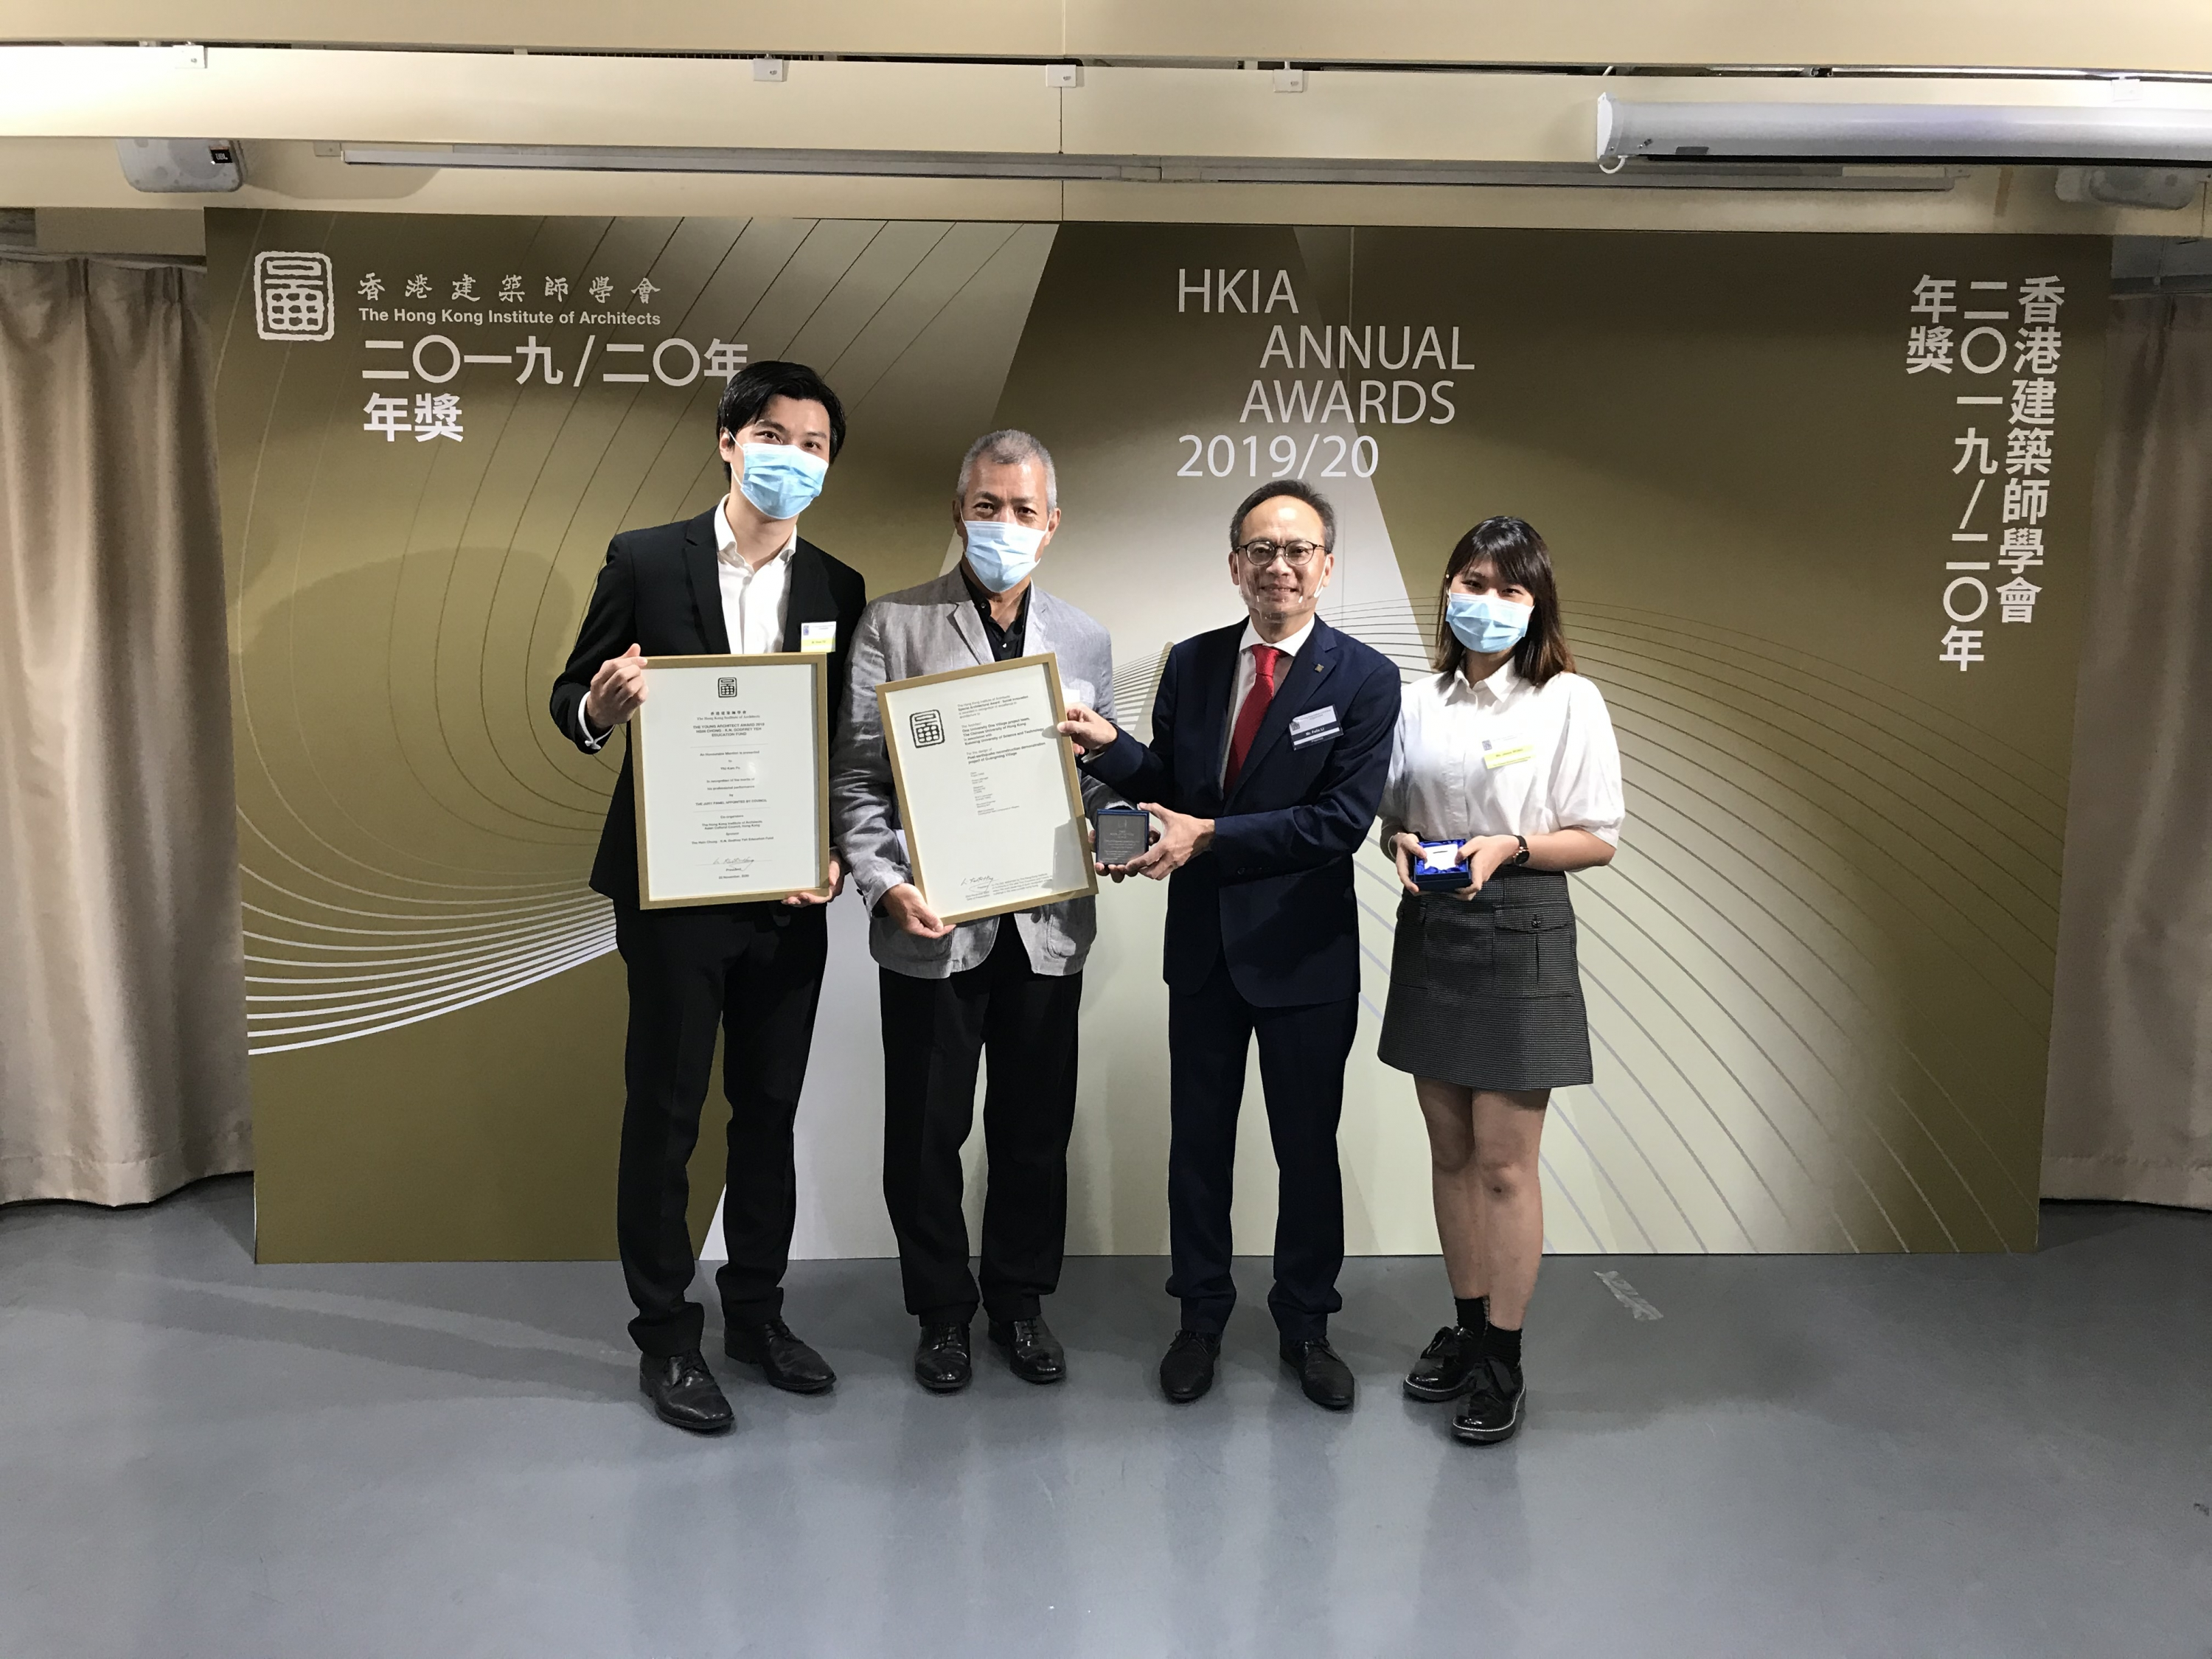 From Left: Vince Yiu, Professor Edward Ng, Felix Li (HKIA President) and Jessie Wong.